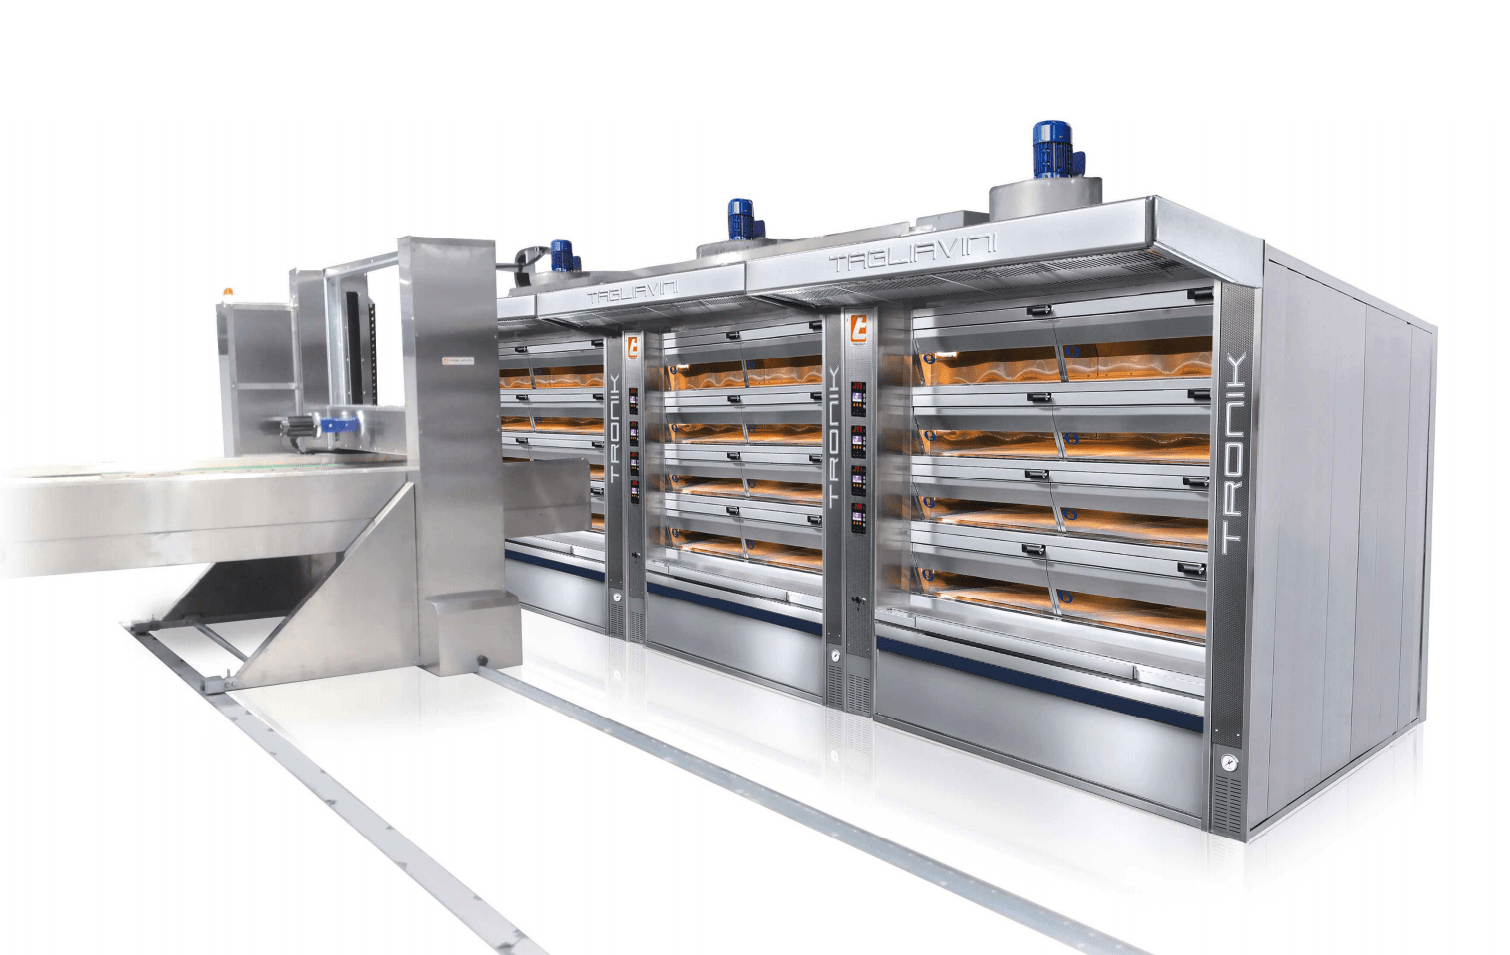 Robot, Programmable Industrial Oven Loader | Bakery Equipment | Wholesale Artisan Bread Production